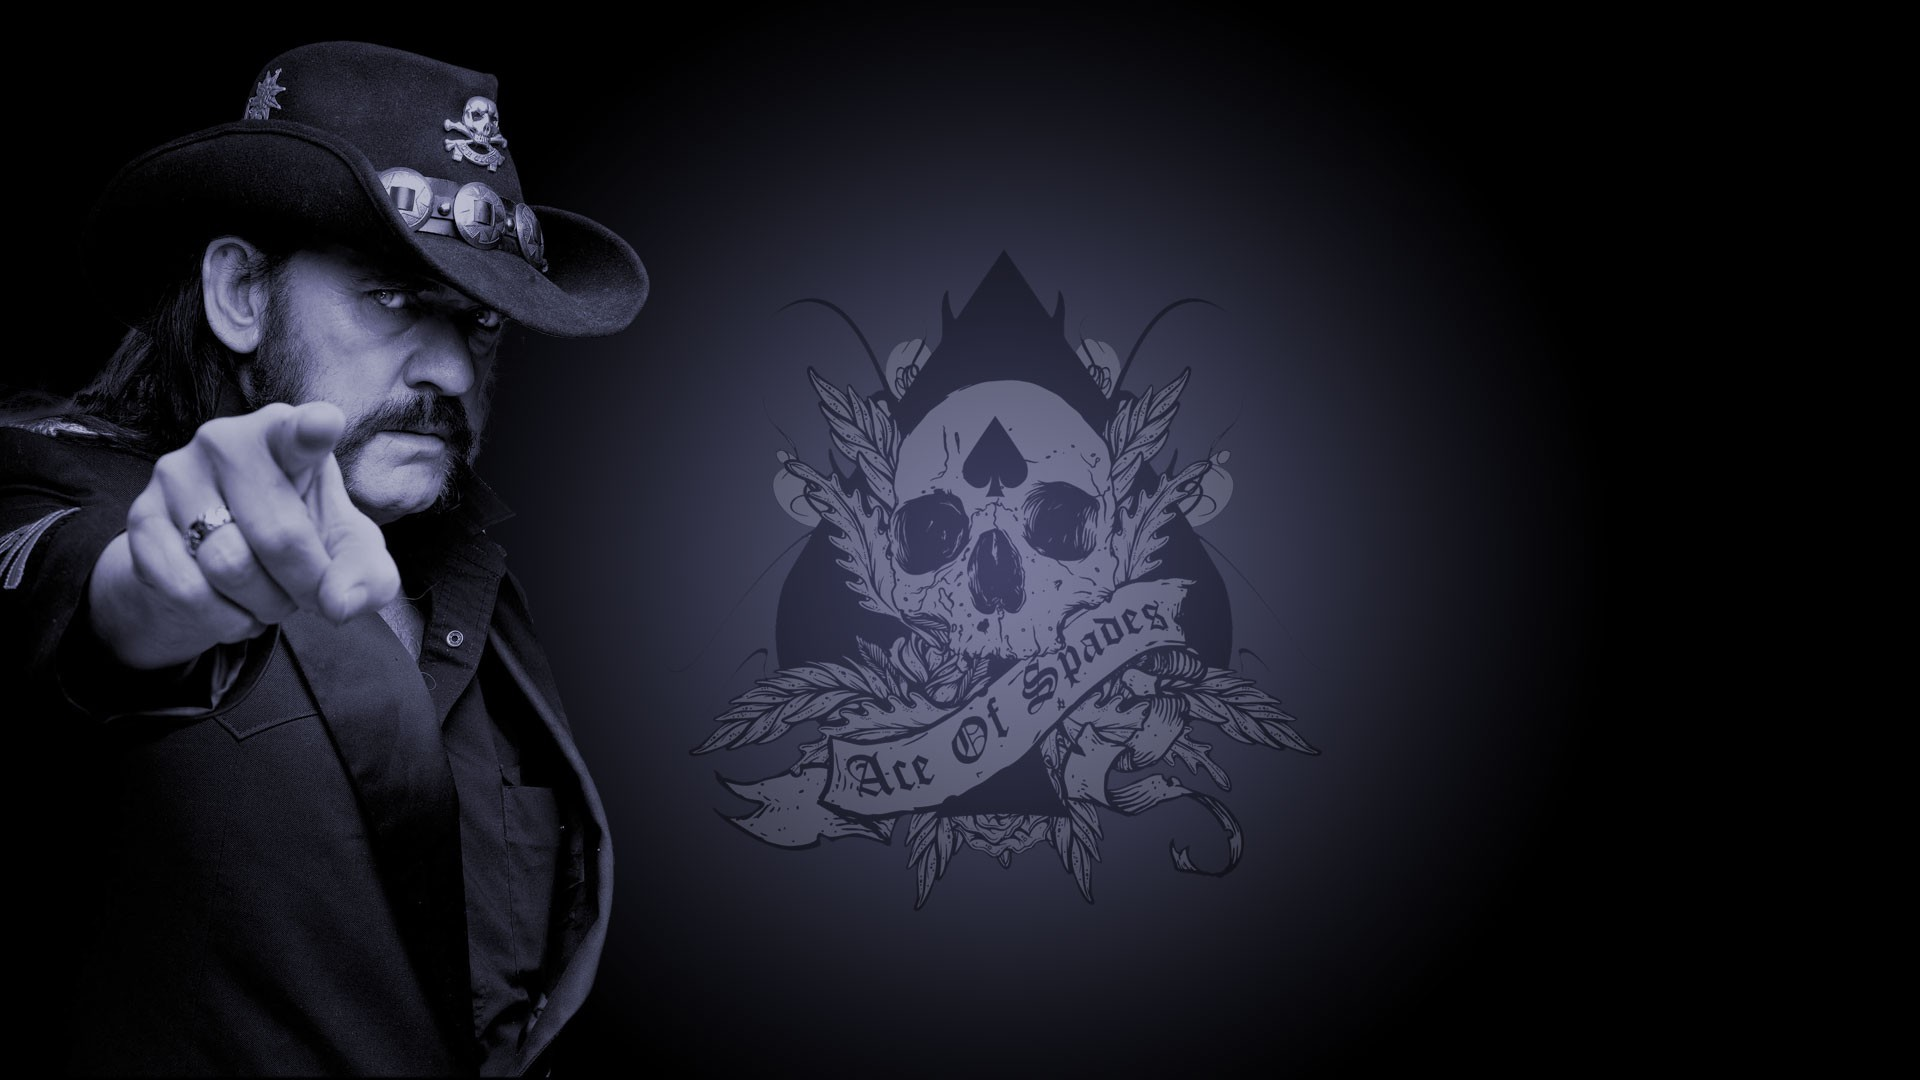 Lemmy Kilmister, Motörhead, Ace Of Spades, Heavy Metal, Dark Hair, Metal  Music, Men Wallpapers HD / Desktop and Mobile Backgrounds